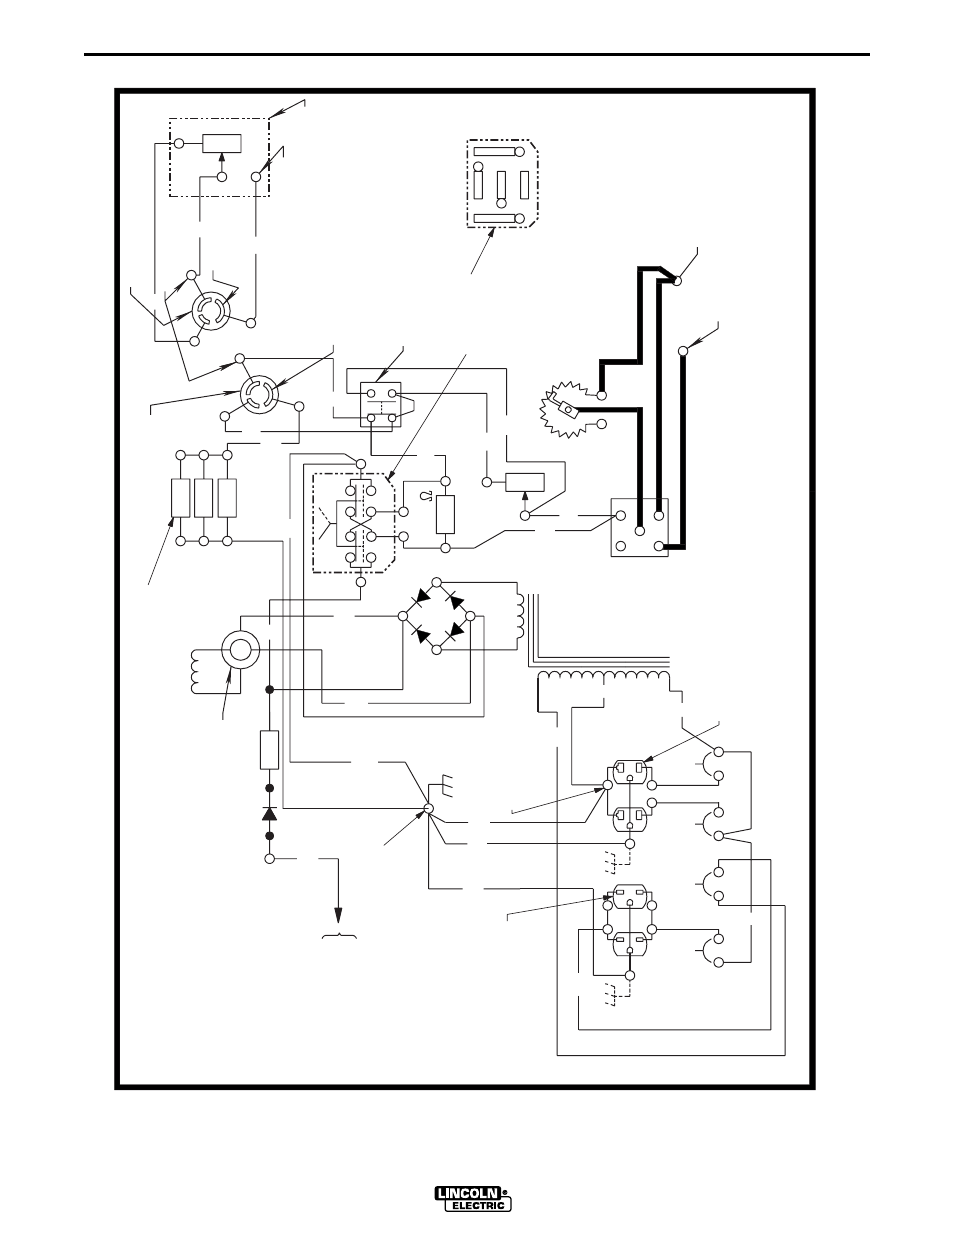 Lincoln Welder Wiring Diagram Library Chicago Electric Winch Diagrams Sae400 Weldn Air Control Sae 400